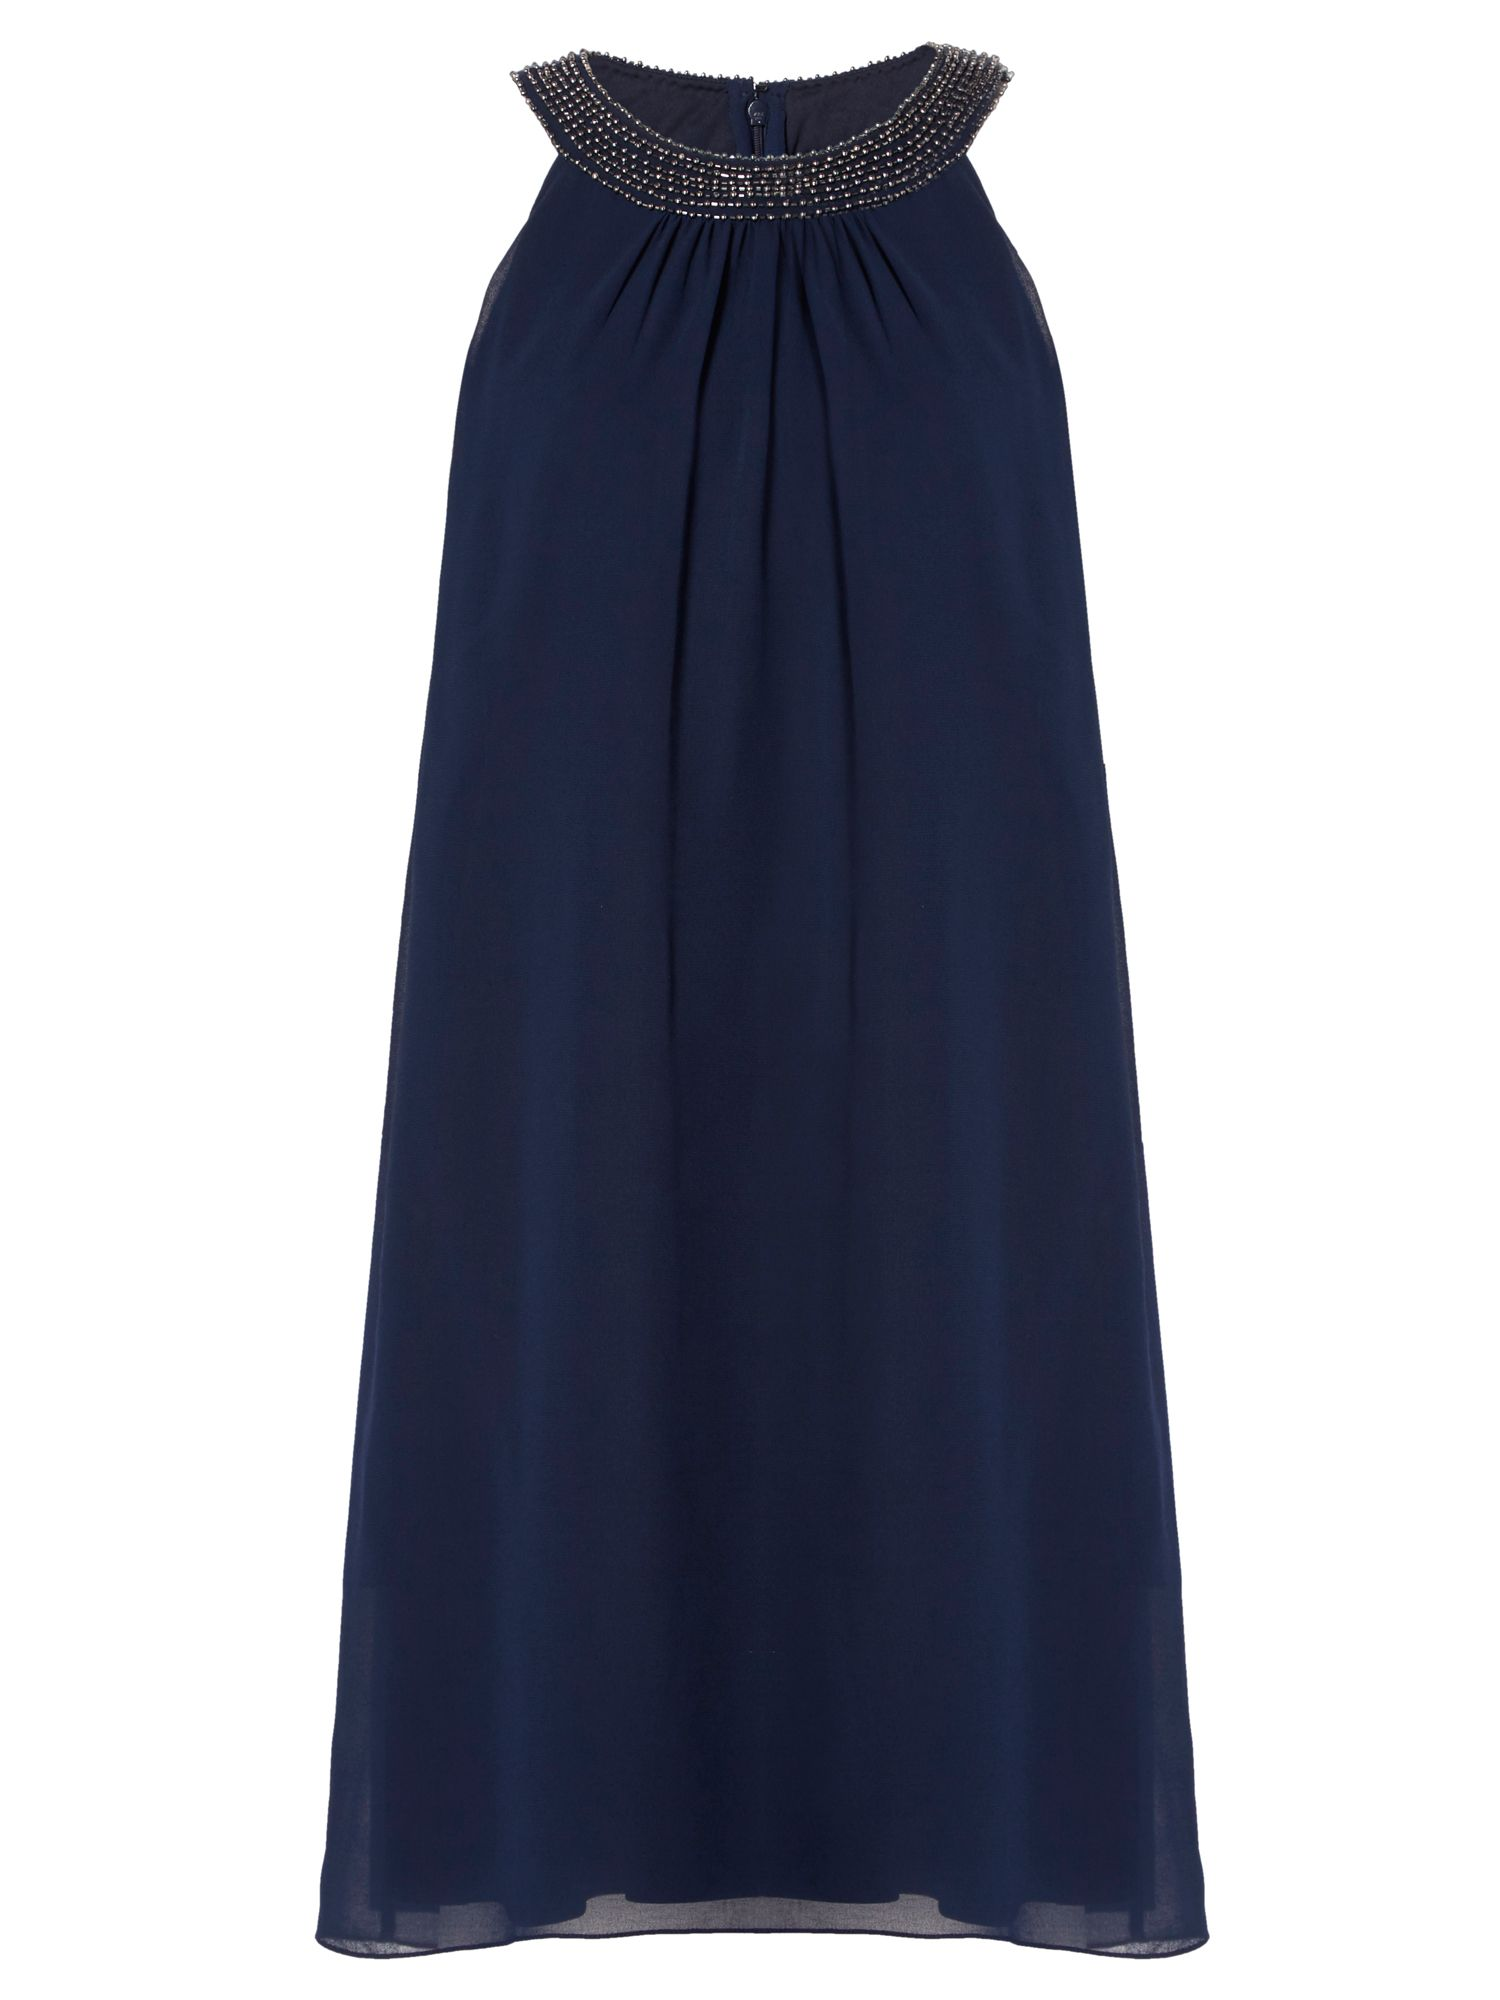 RAISHMA Embellished Collar Swing Dress, Blue